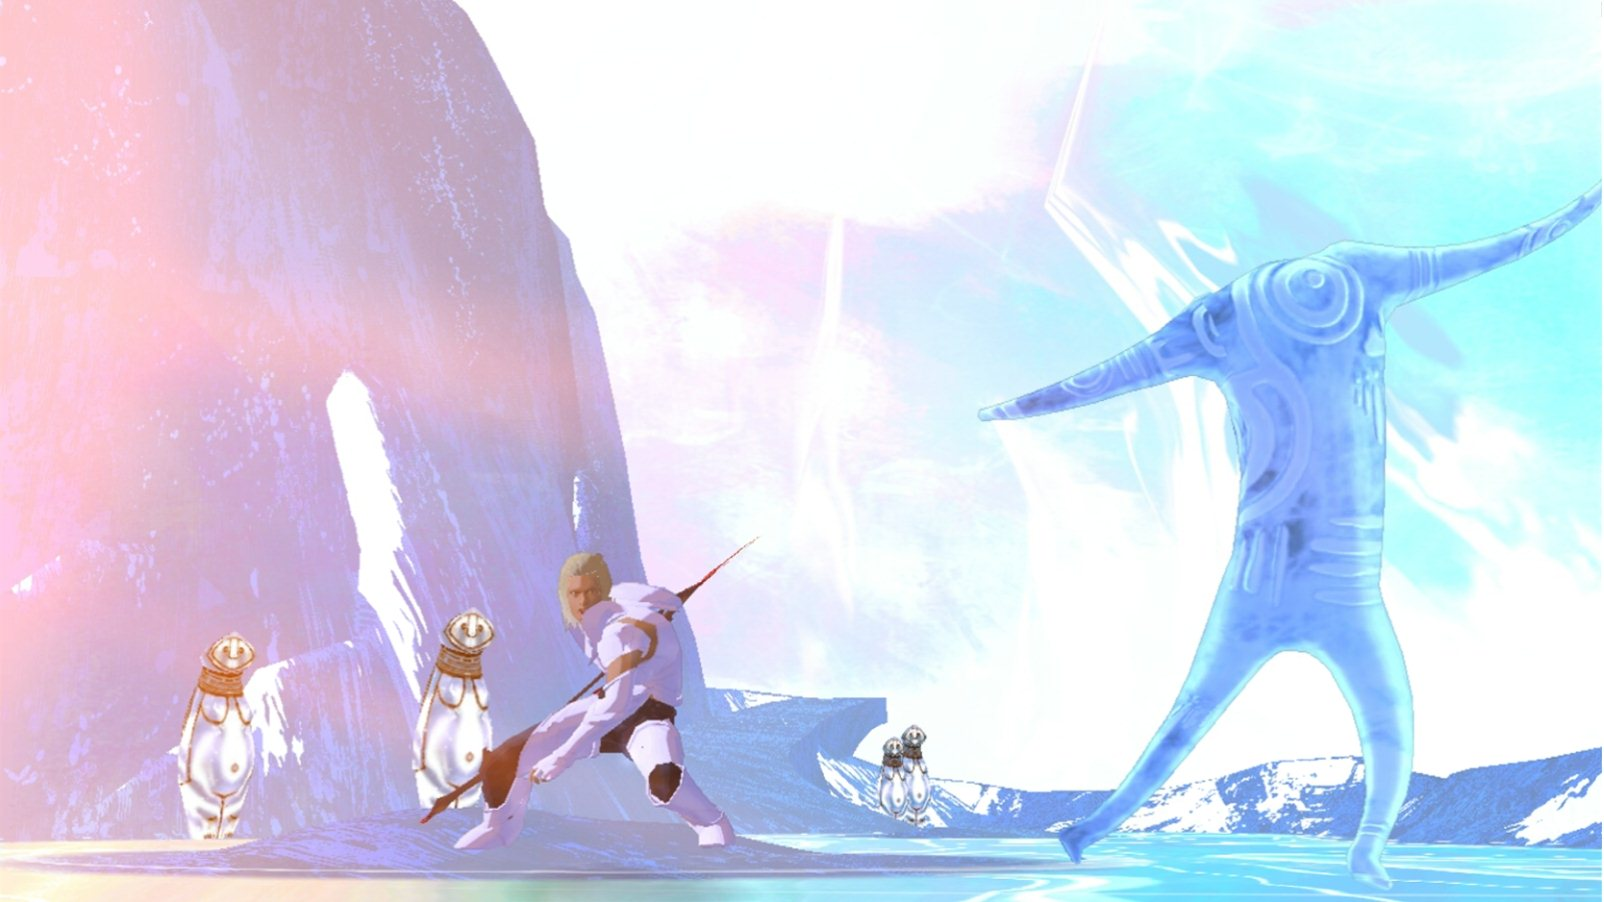 El Shaddai: Ascension of the Metatron - Gameplay